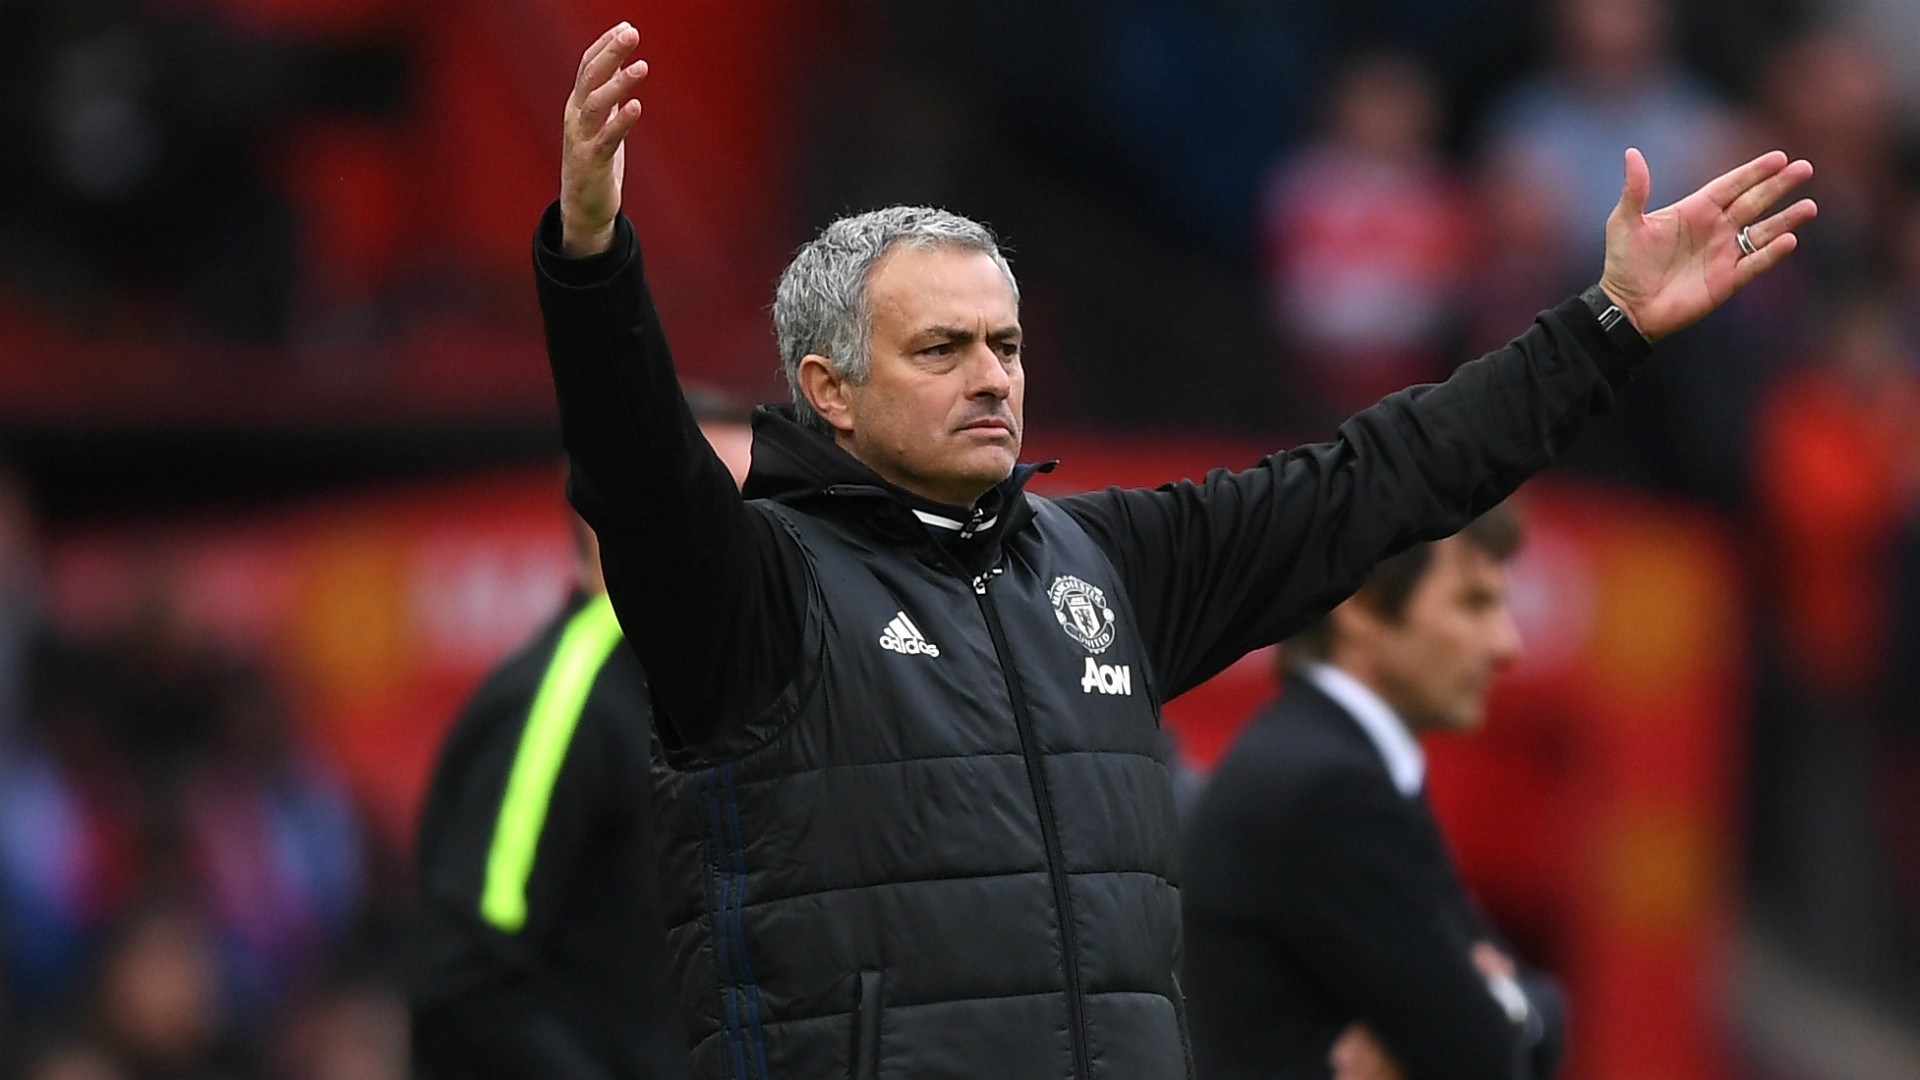 EPL: Mourinho gets revenge over Chelsea, Liverpool win away